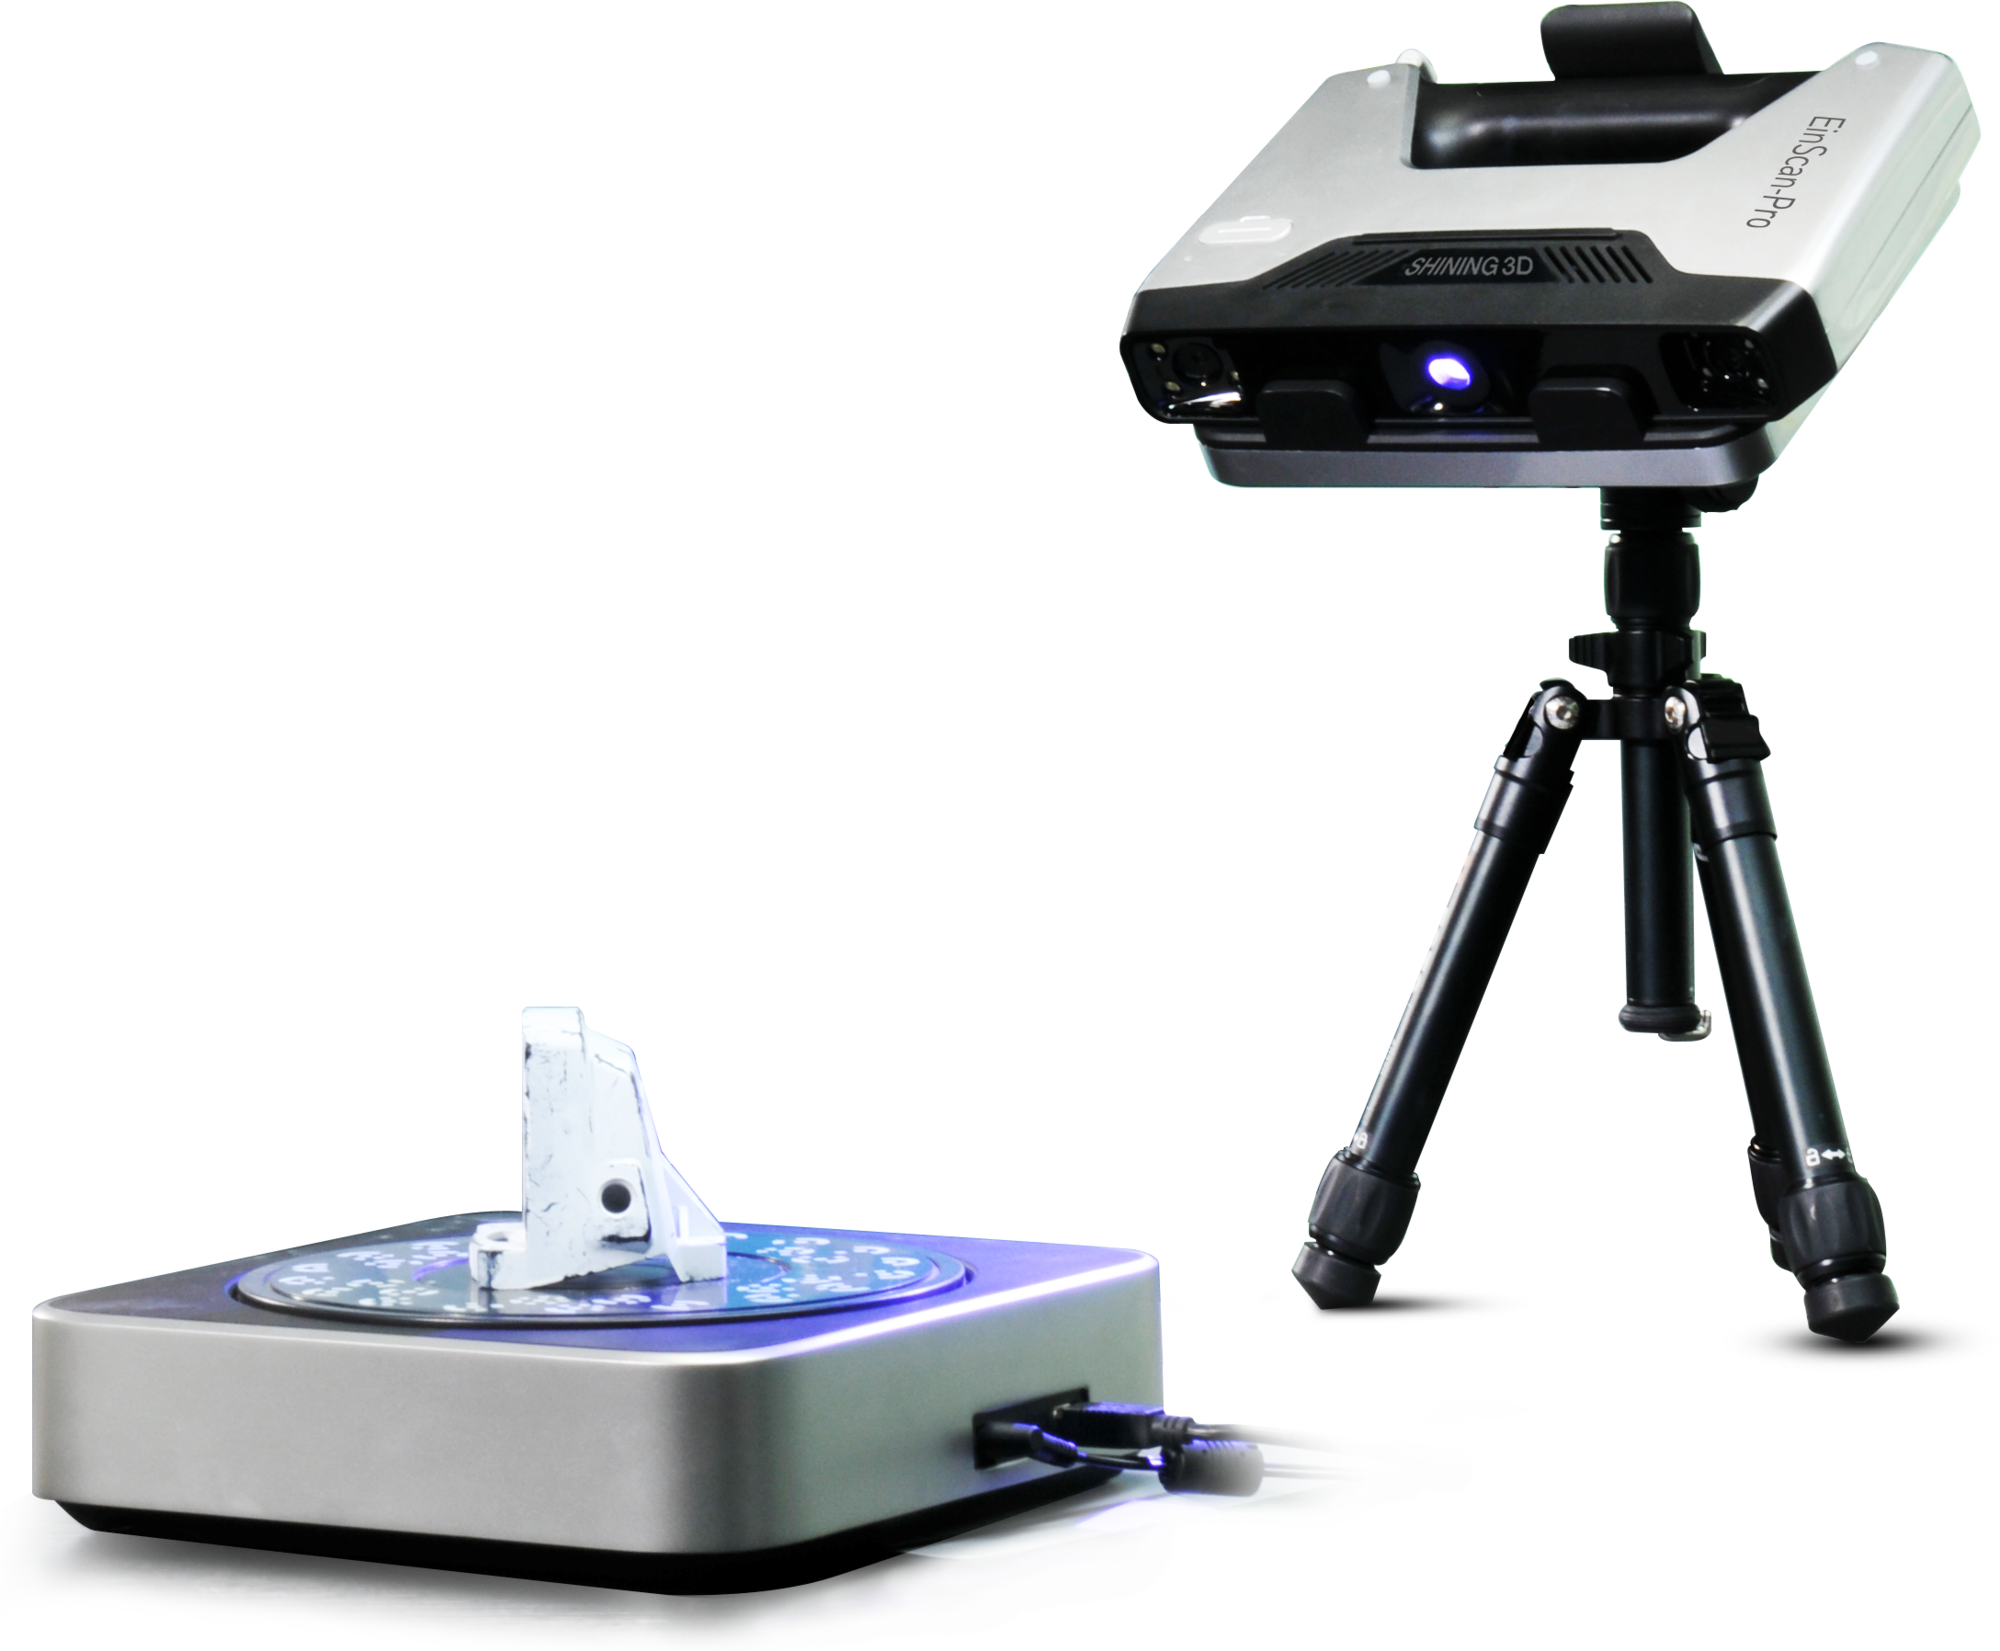 HD Fixed Scan - When a smaller intricate object needs to be scanned this is the most effective method, as it allows the scanner to pick up the smallest of details at a pace set in the software to achieve the best result.